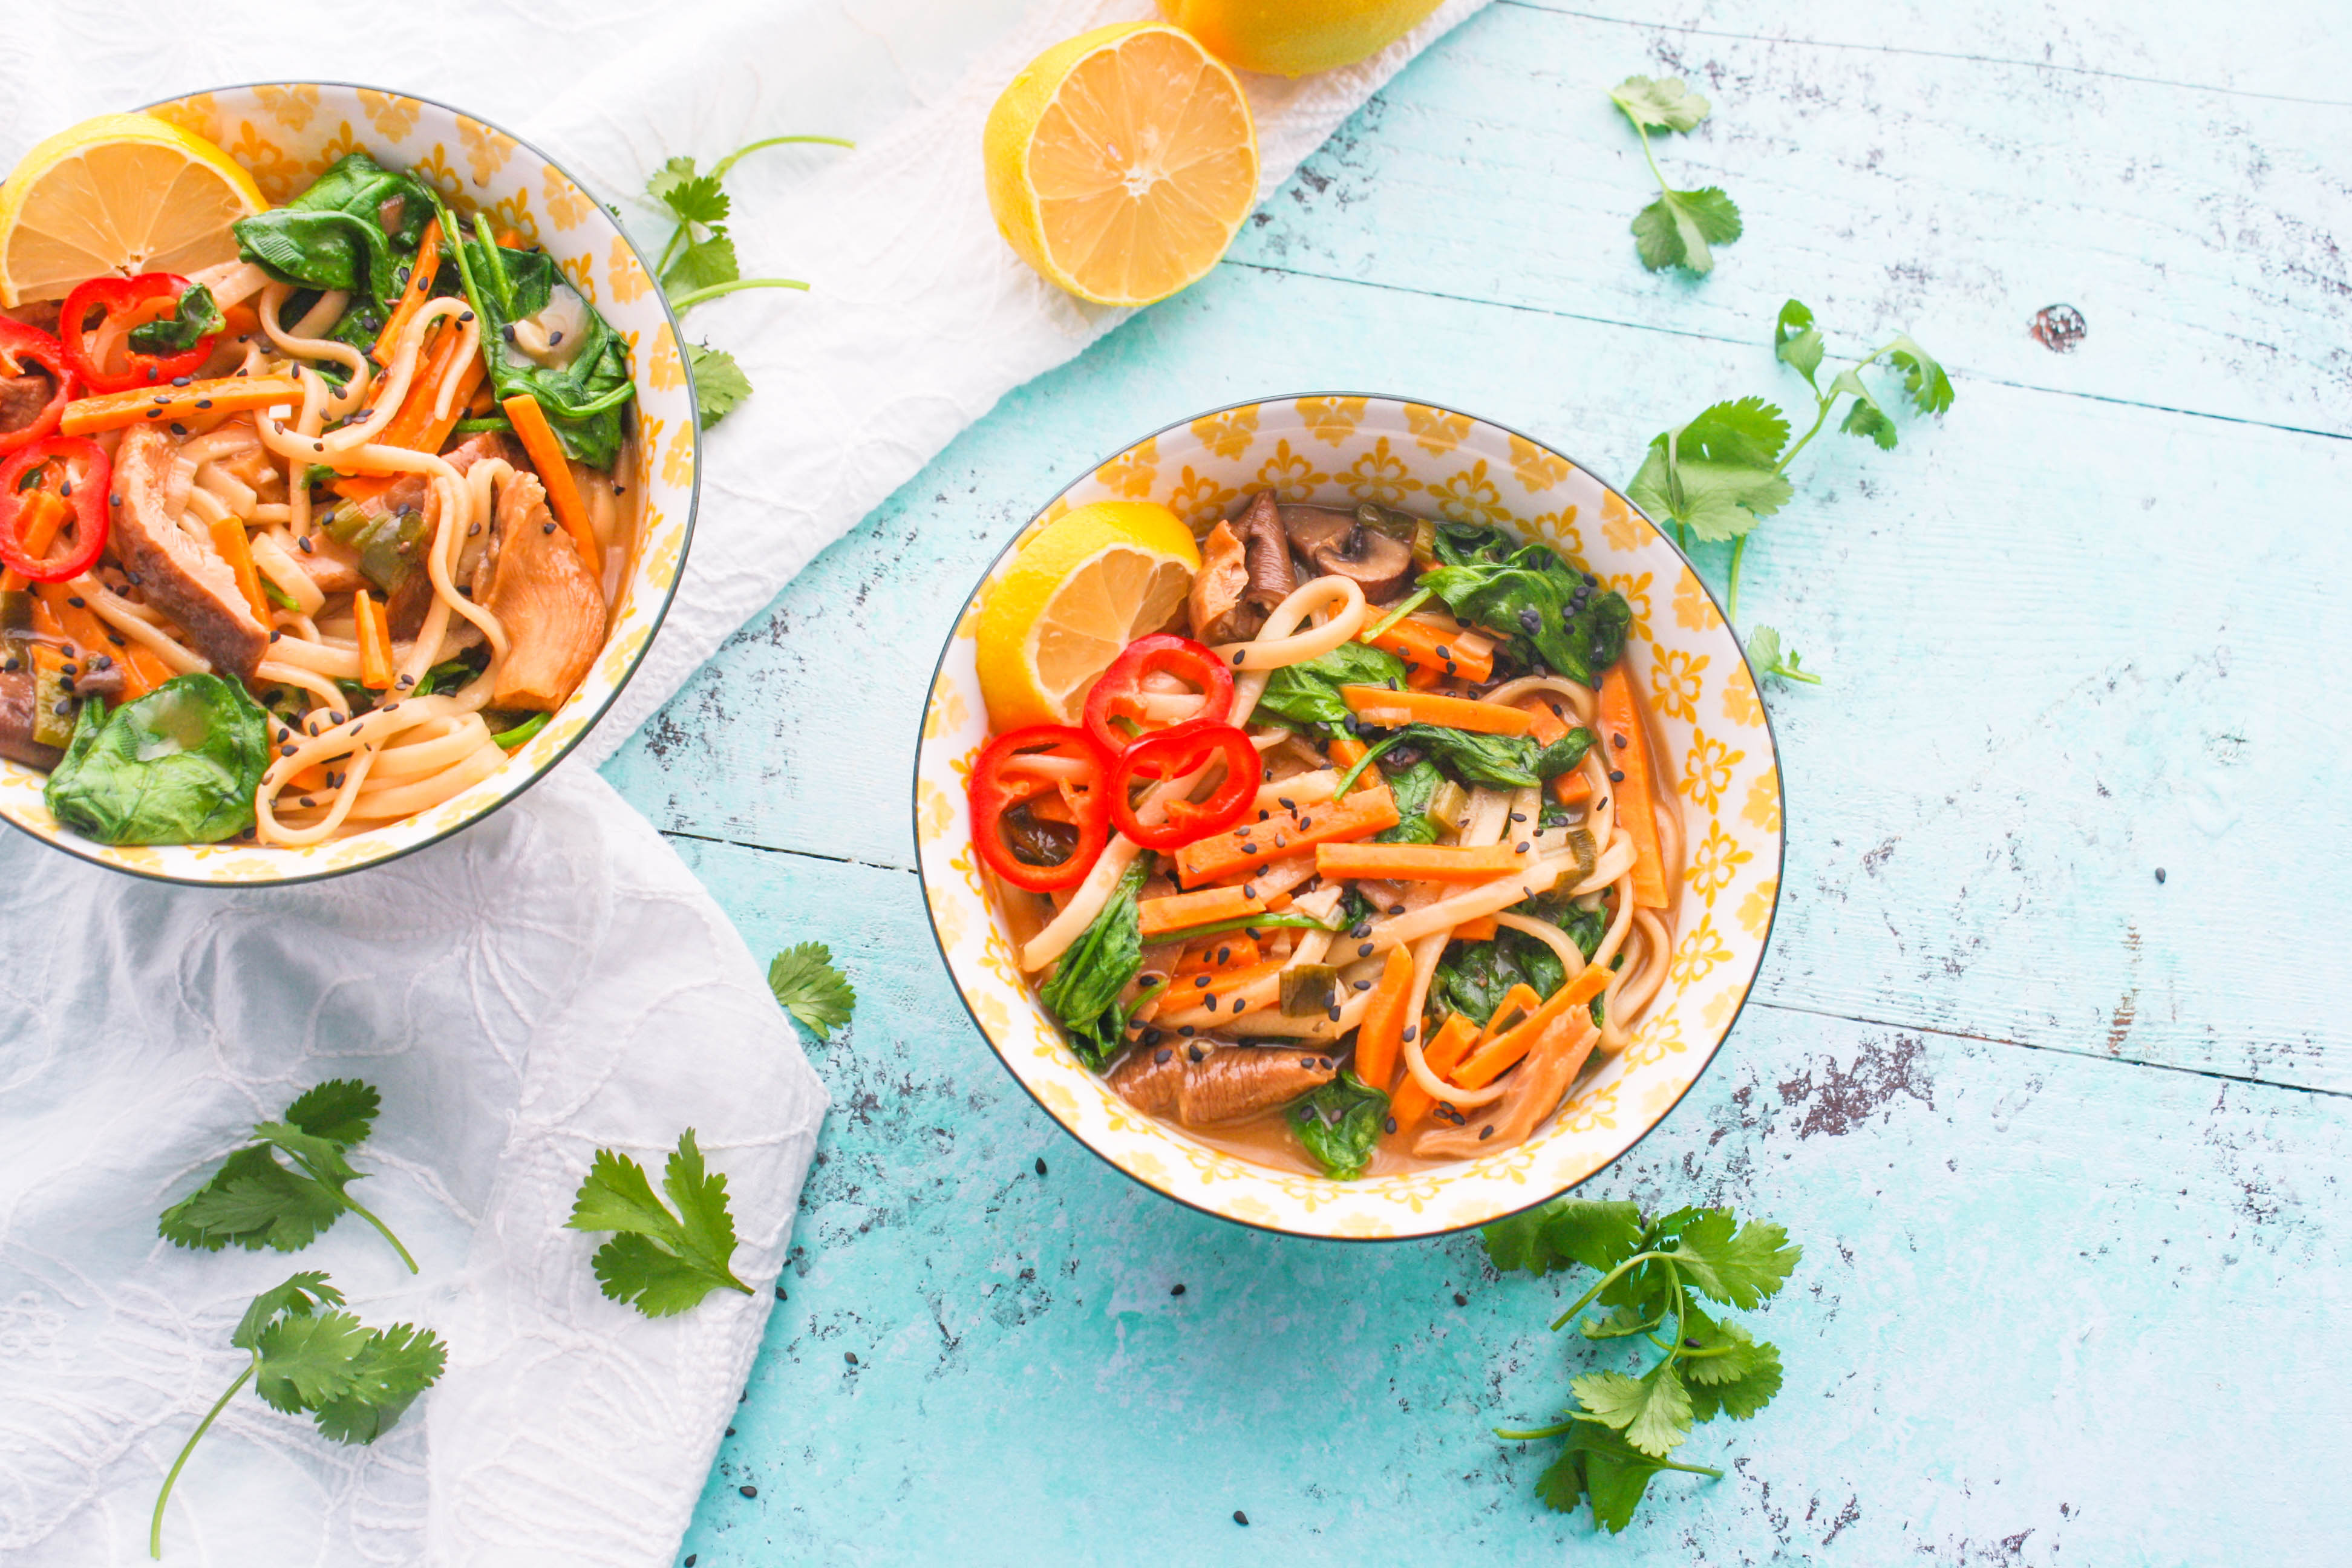 Udon Noodle Bowls with Mushroom, Sweet Potato & Spinach are easy to make at home (and so tasty)! You'll love sharing these Udon Noodle Bowls with Mushroom, Sweet Potato & Spinach with your family and friends!